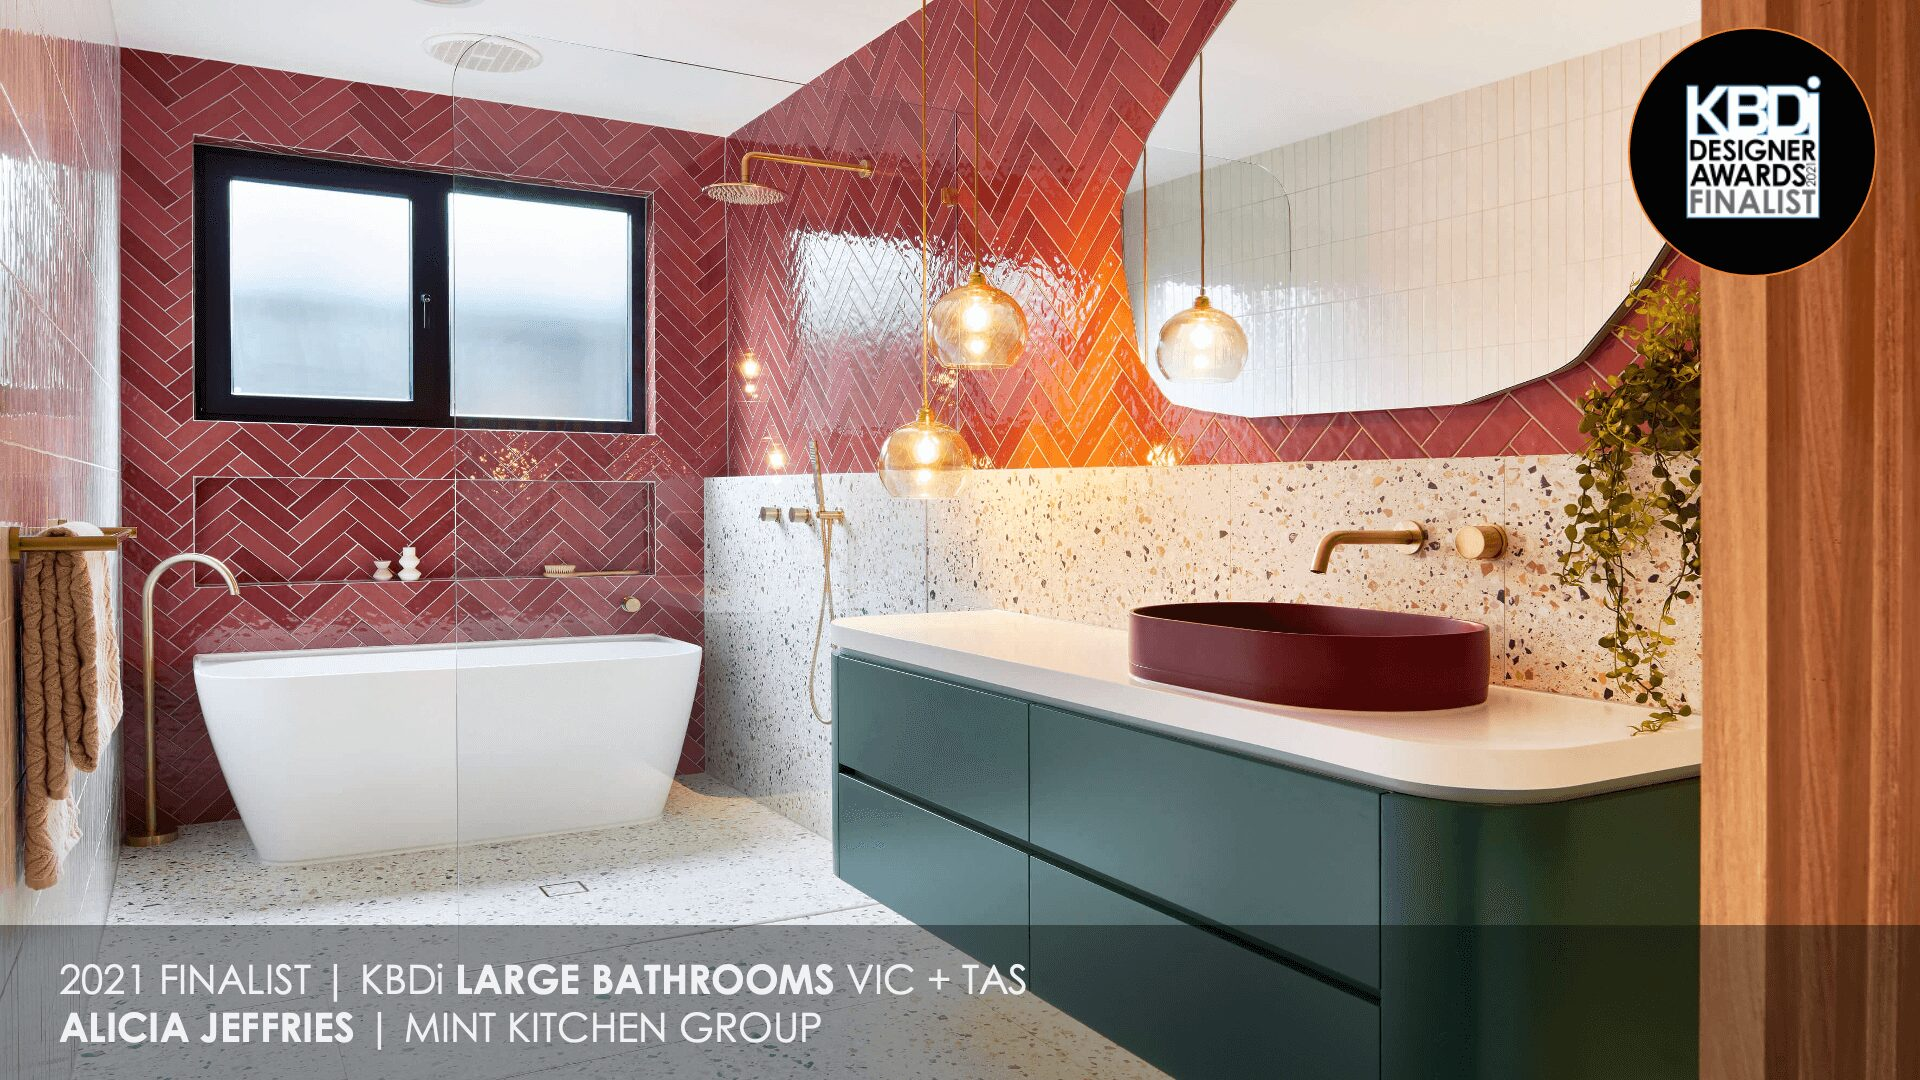 A_22_Alicia Jeffries_Large Bathrooms_VIC